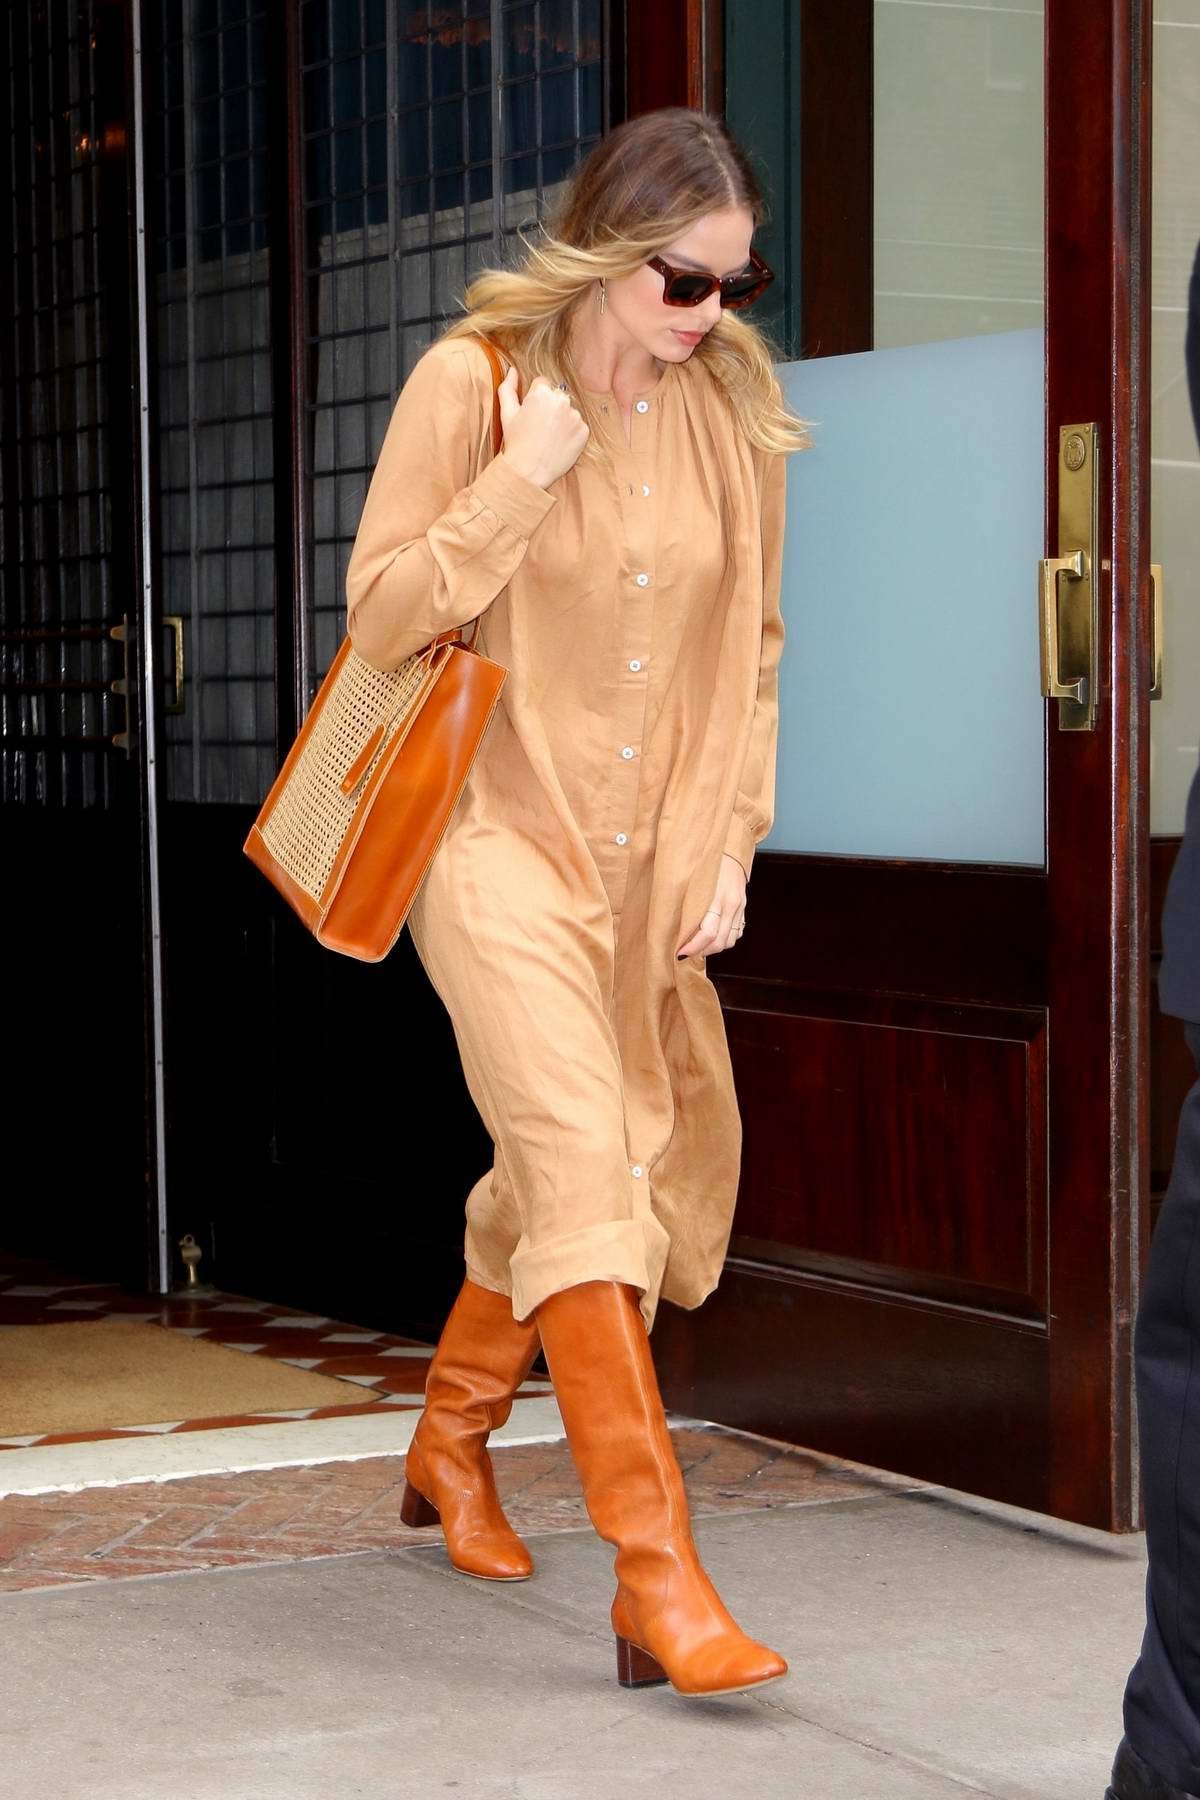 Margot Robbie wears a buttoned down beige dress and burnt orange leather boots as she leaves her hotel in New York City